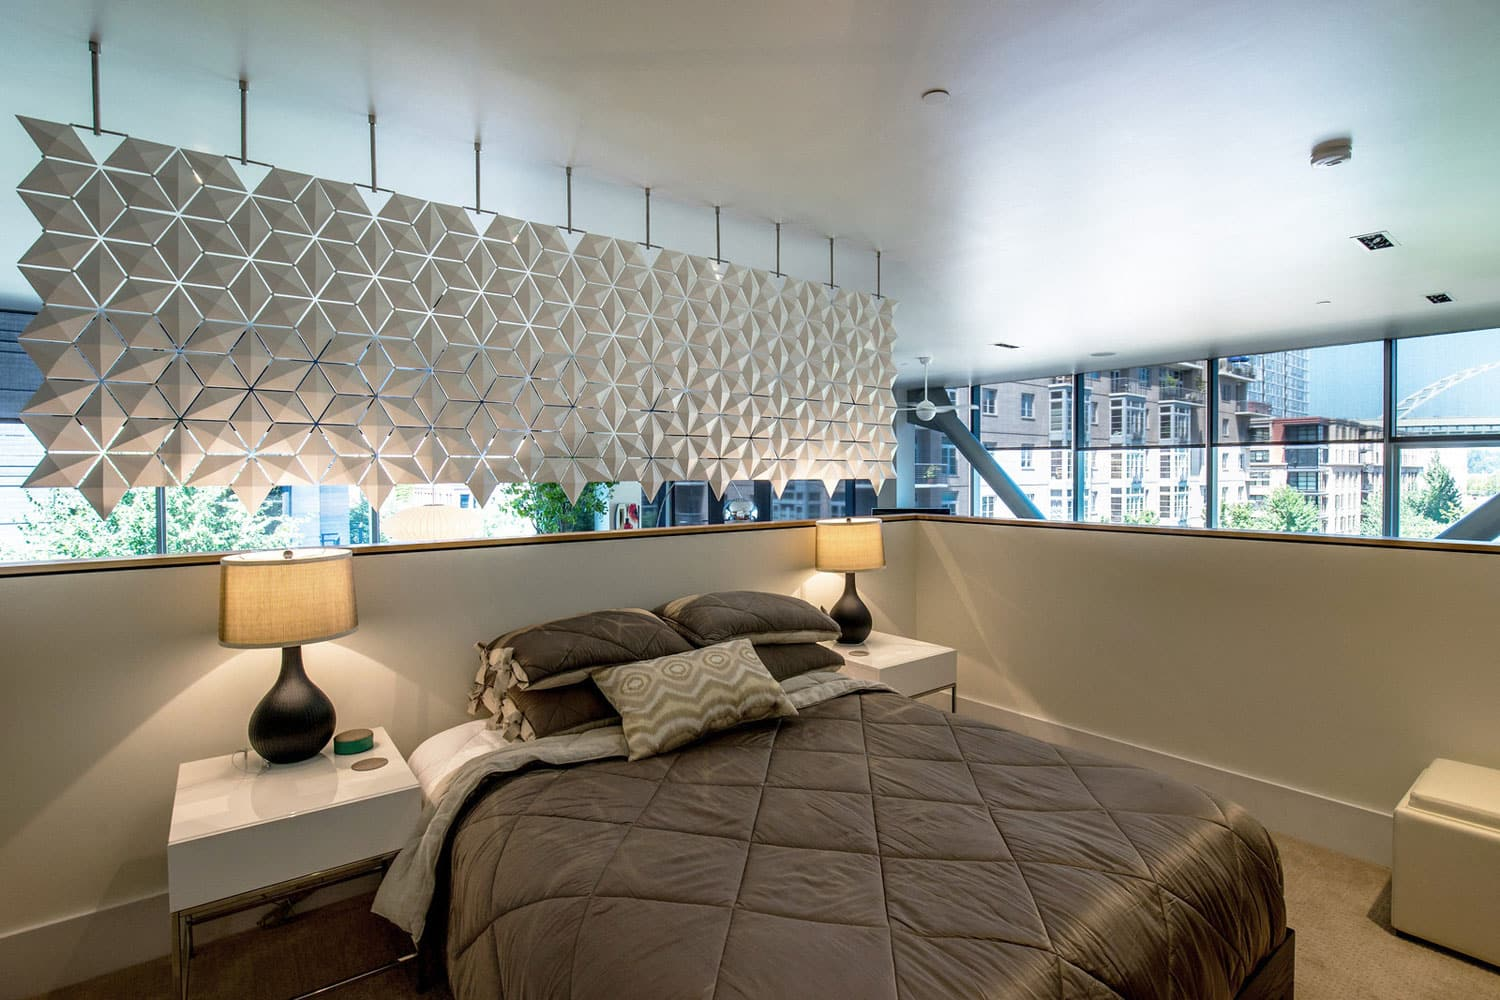 Breathtaking bedroom and living room divider ideas showcase - Room divider ideas for bedroom ...